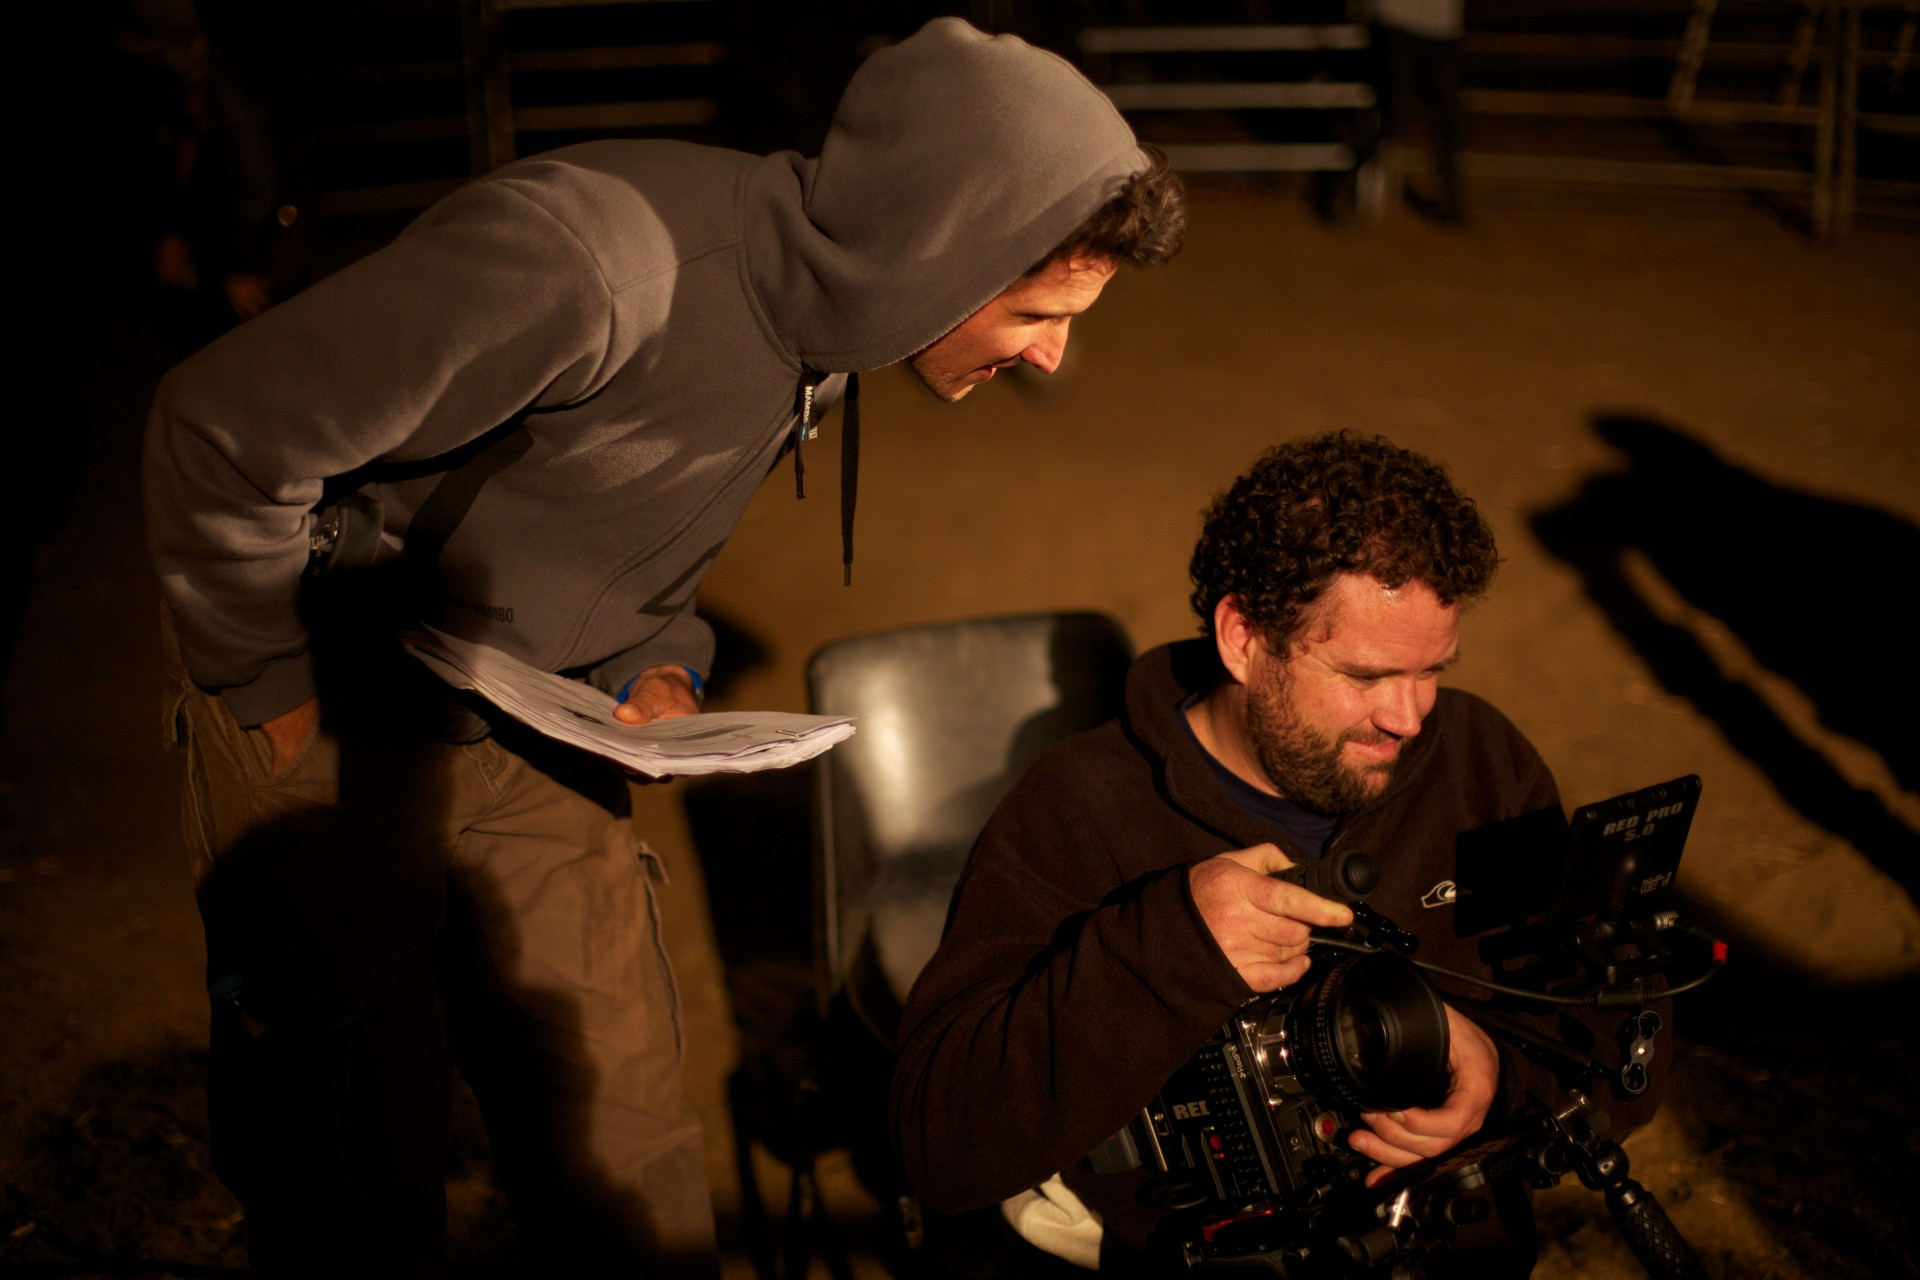 The cinematographer & director checking a shot